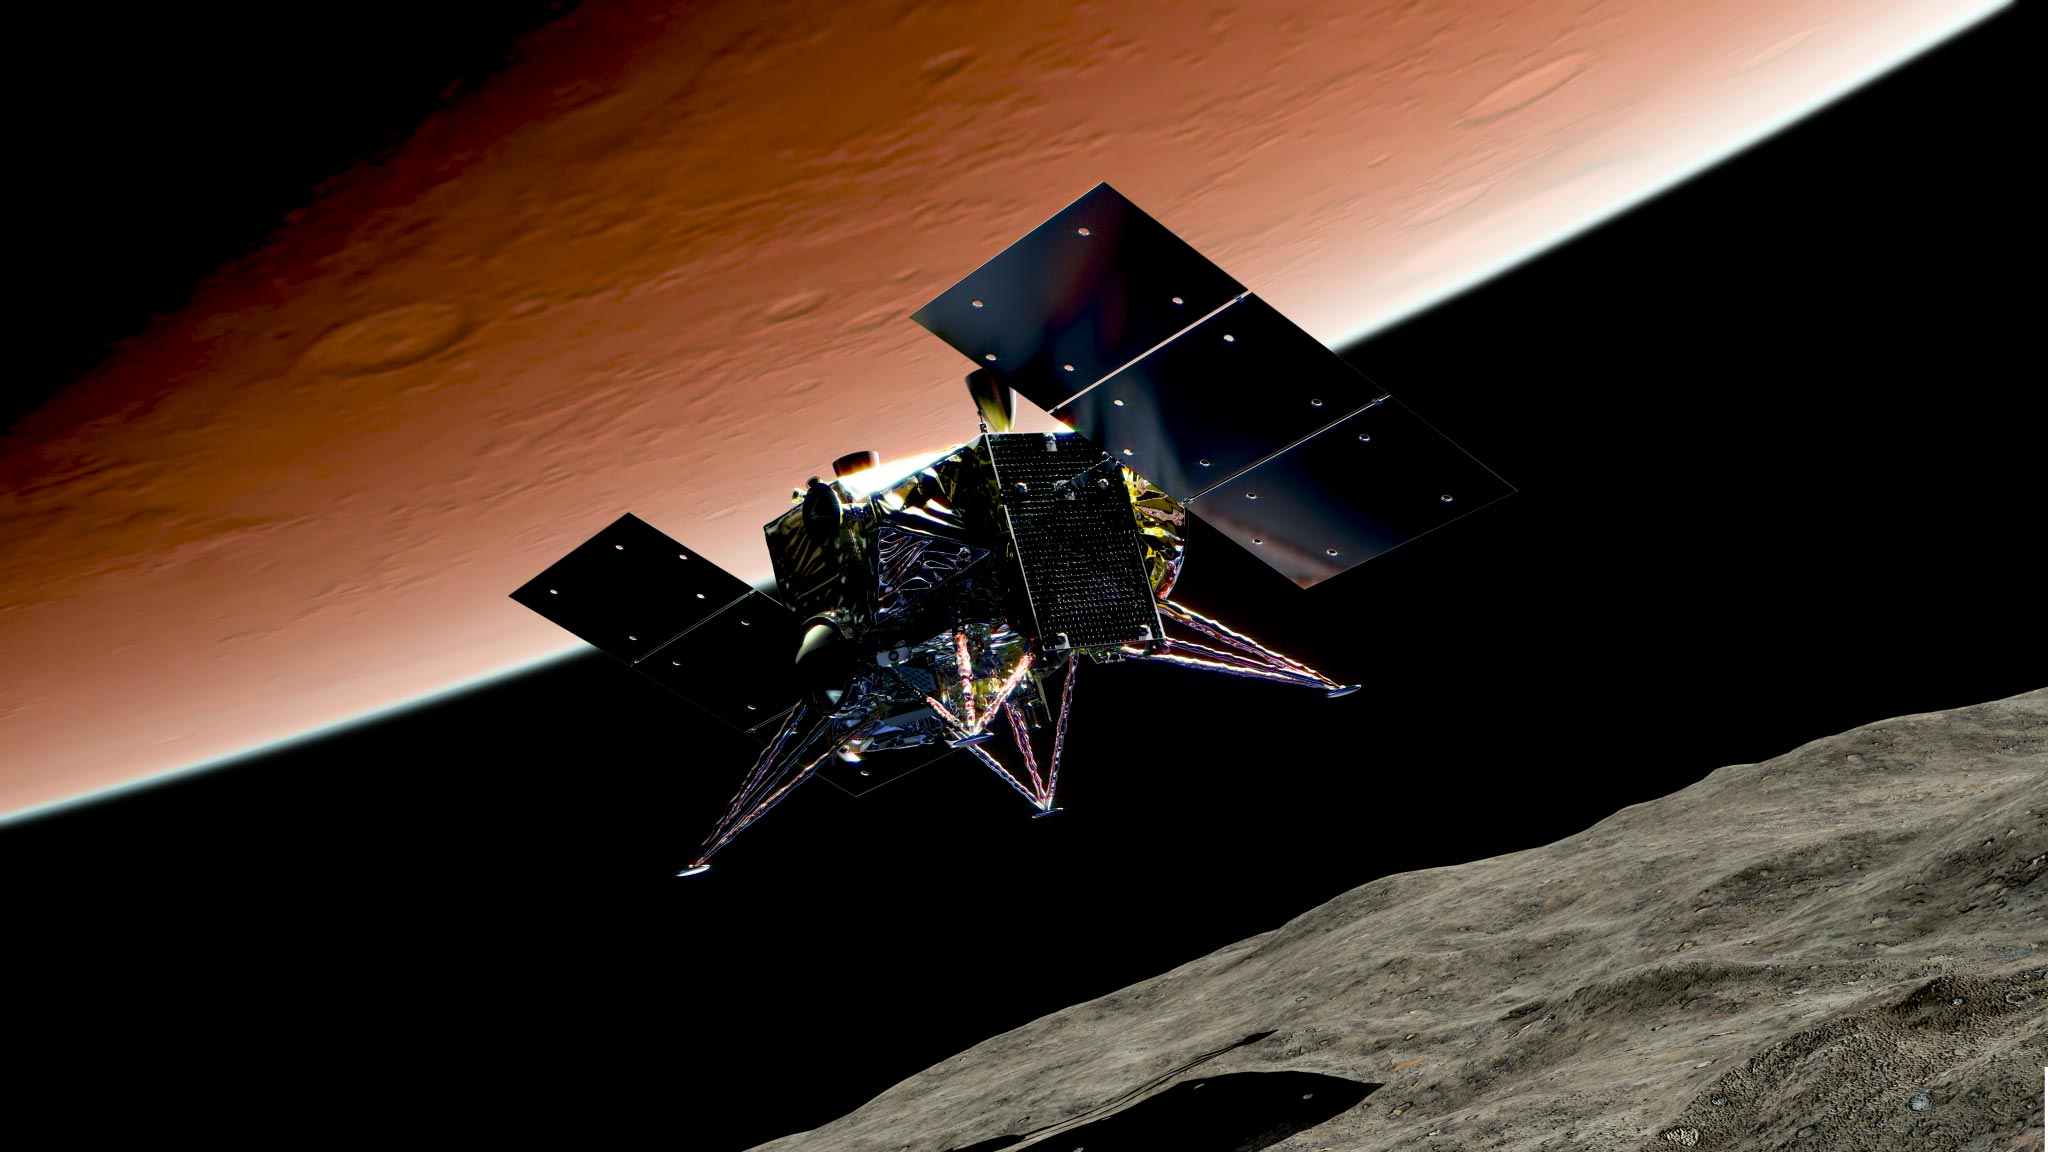 Japan Space Agency: Why We're Exploring the Moons of Mars - SciTechDaily